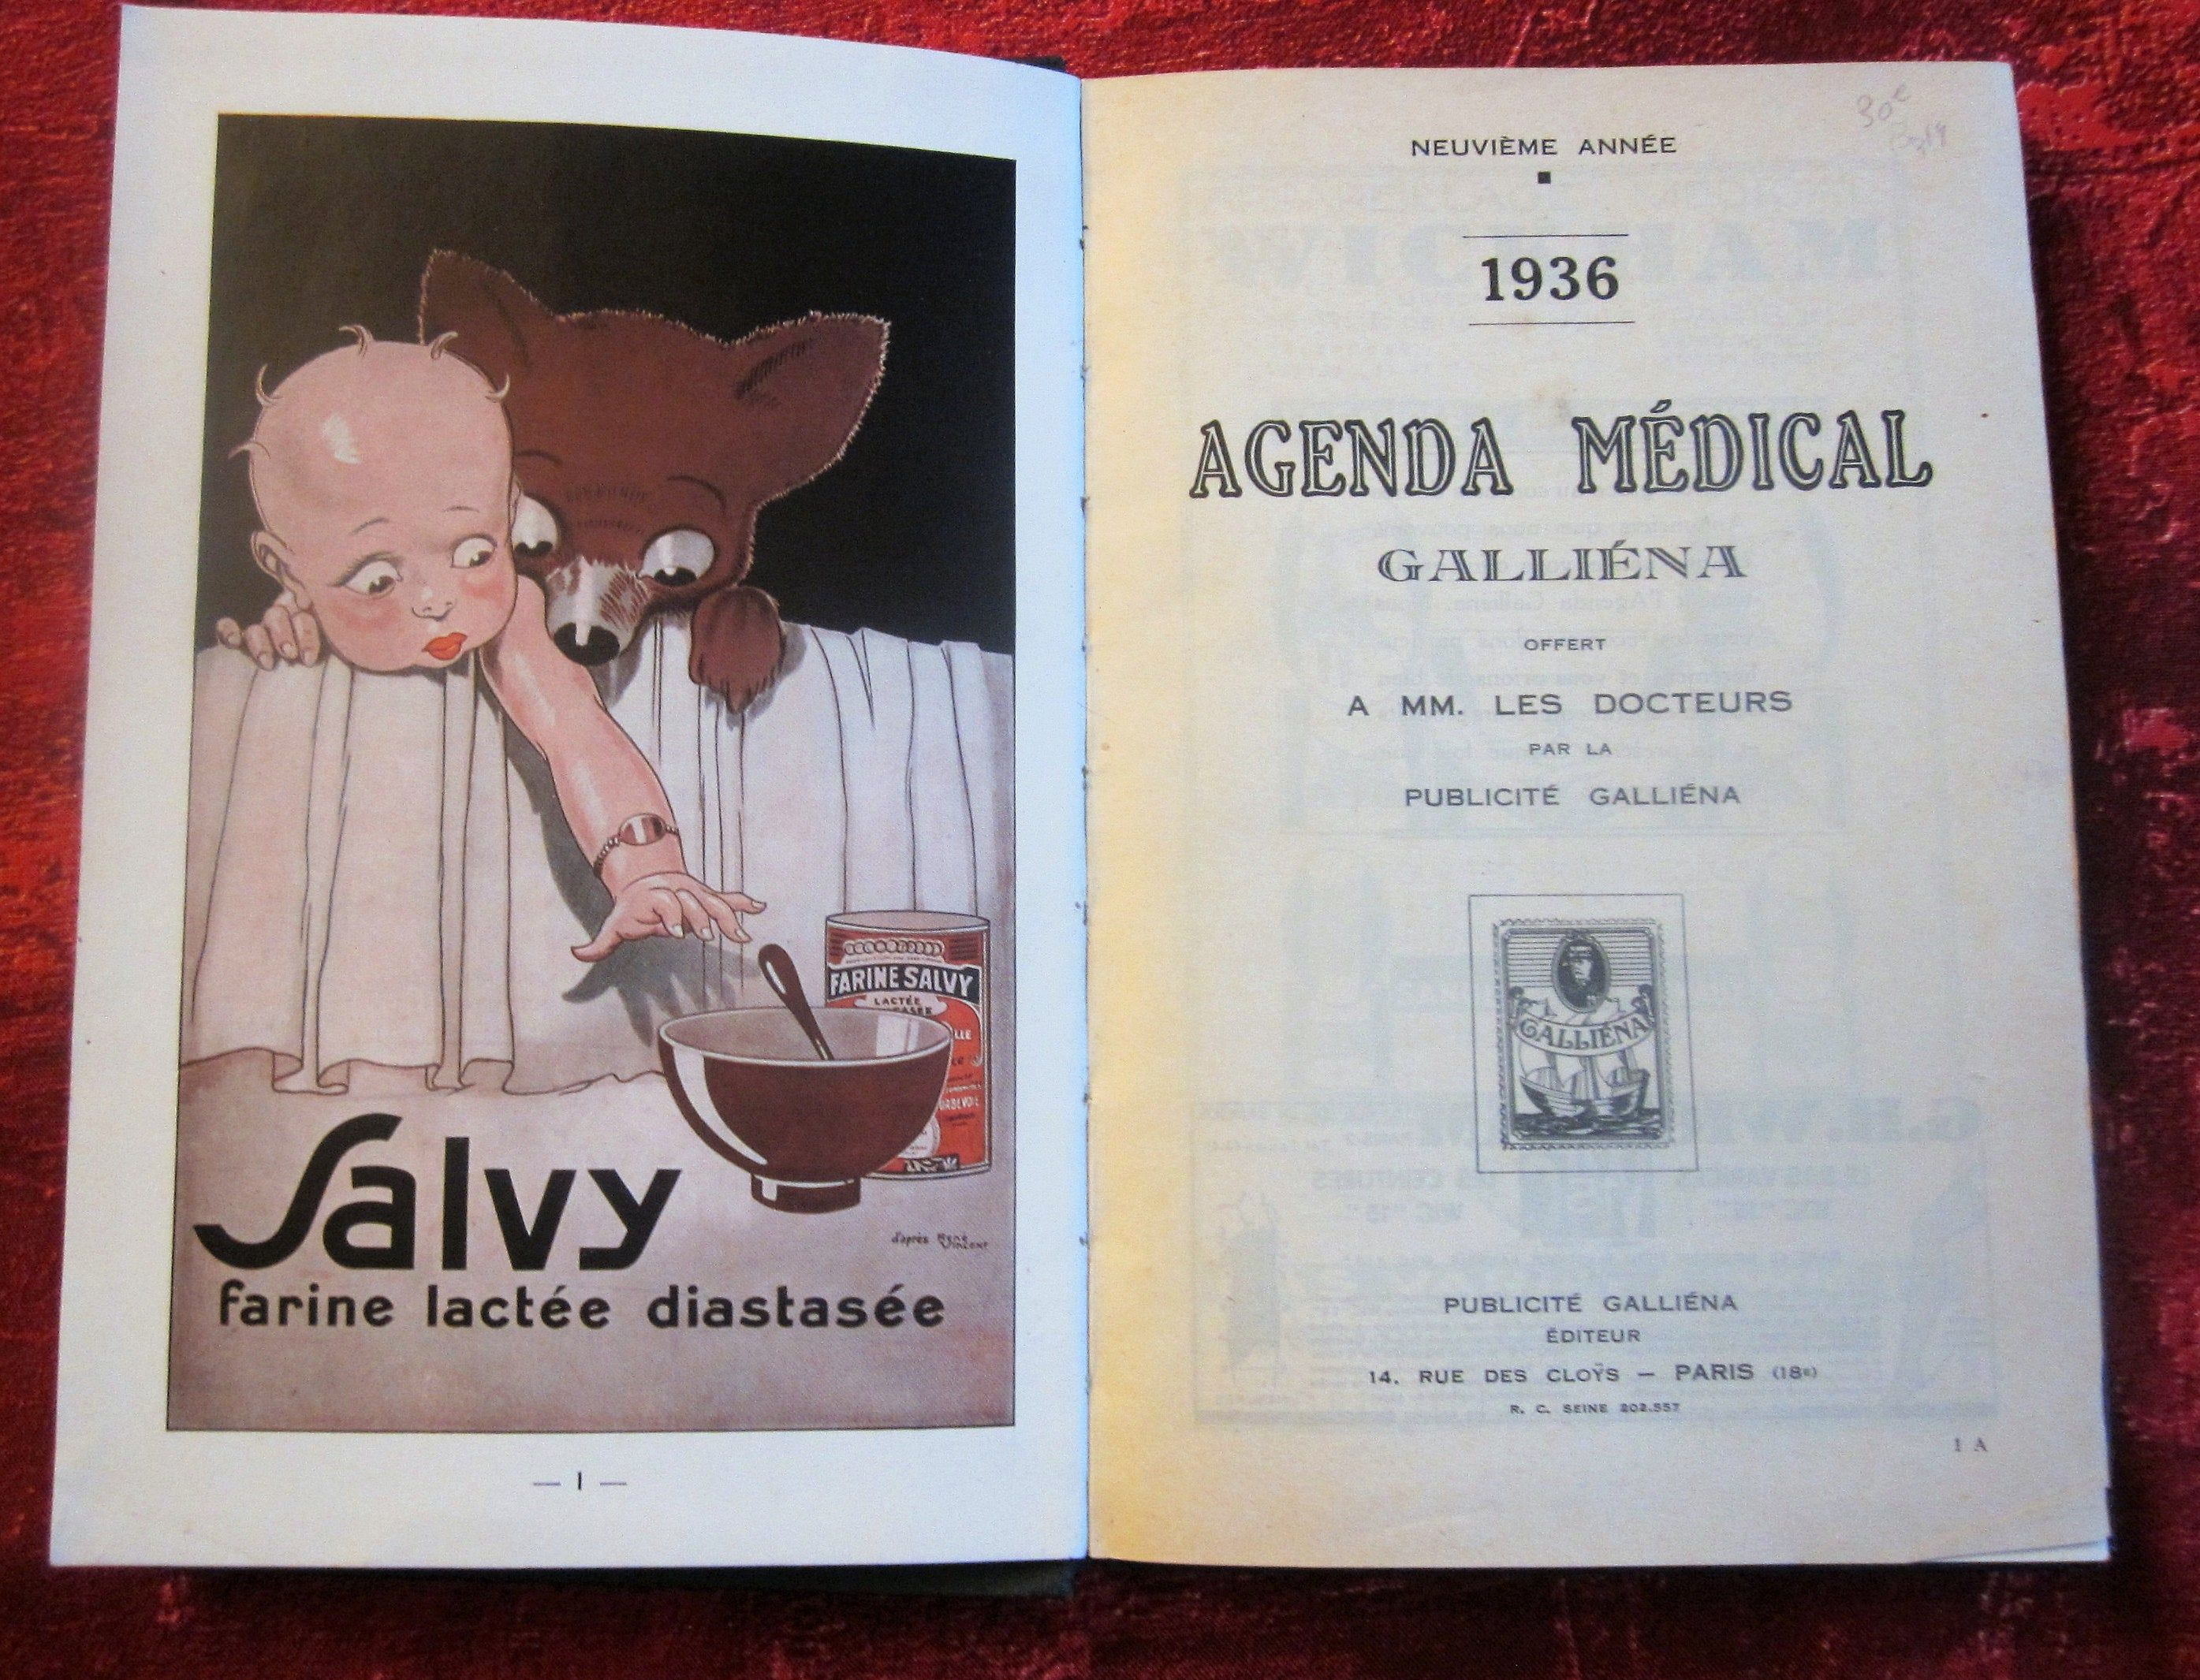 Datebook 1936 New Galiena Medical Agenda For Doctor Food Advertissing Parmacy Notes Memo Honorary French Vint Publicite Alimentaire Le Docteur Carte Postale